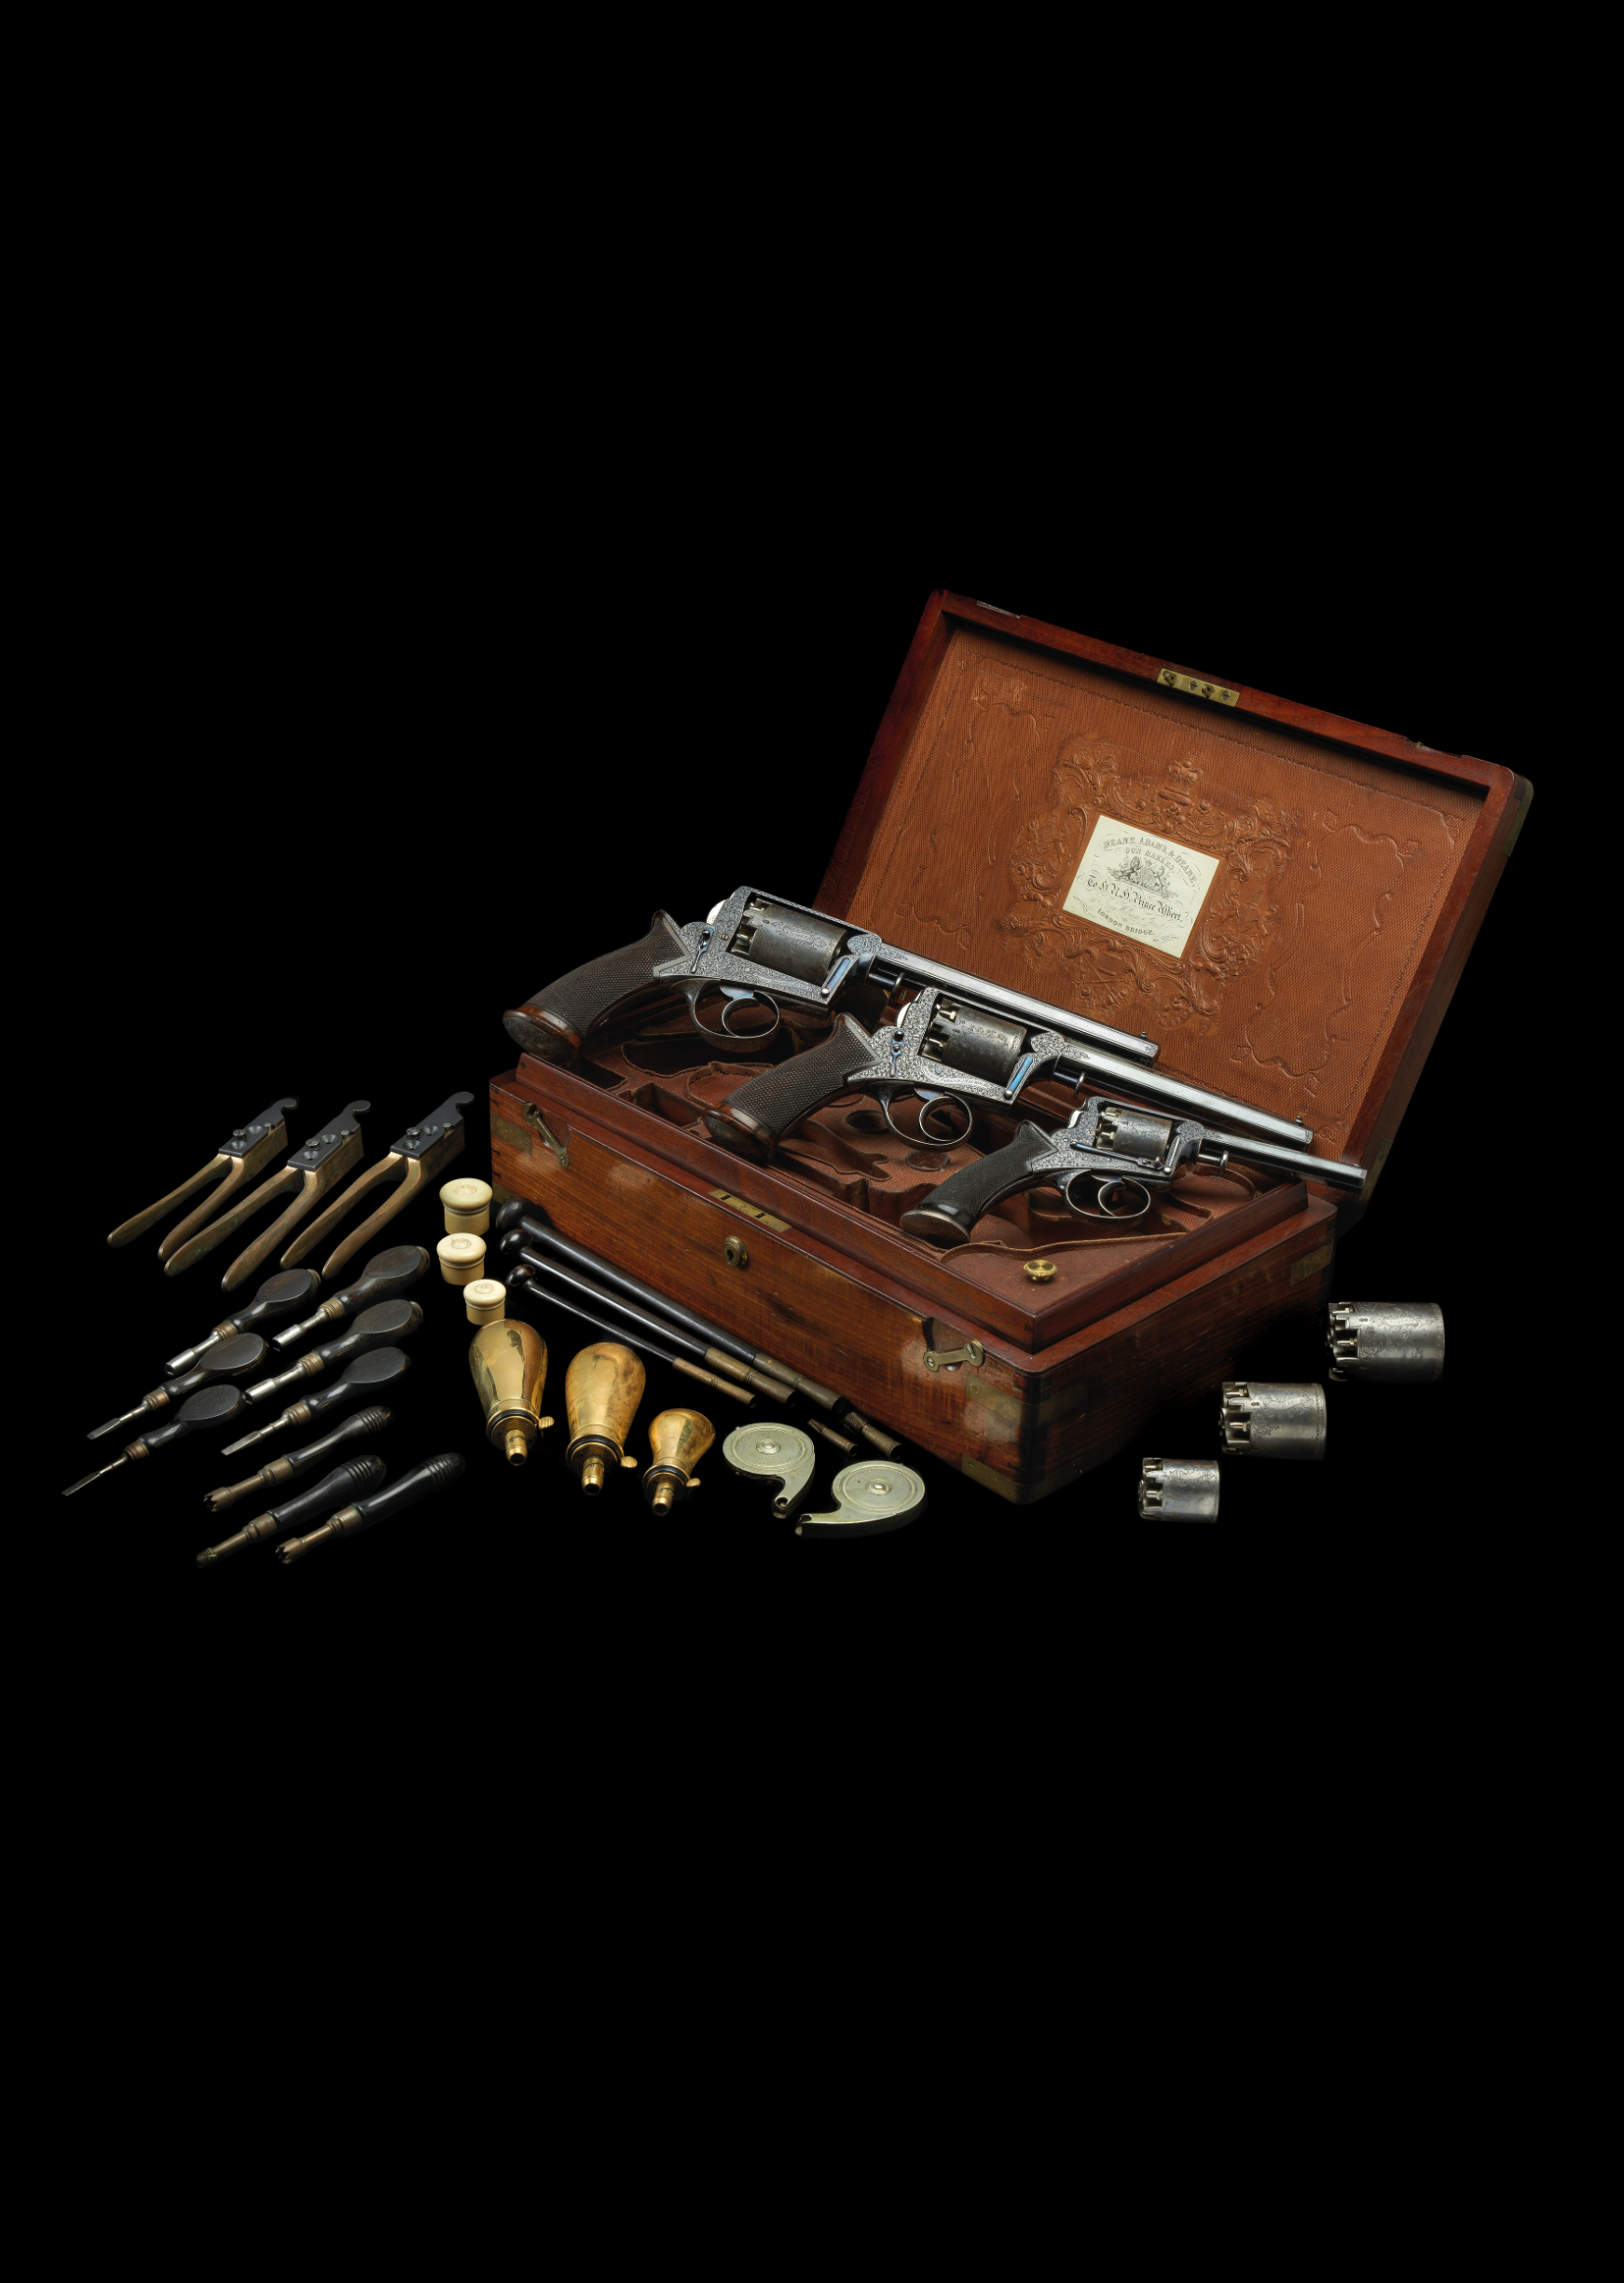 ‡˜Ⓦ AN EXCEPTIONAL CASED SET OF 38 BORE^ 54 BORE AND 120 BORE ADAMS PATENT 1851 MODEL SELF-COCKI - Image 3 of 5